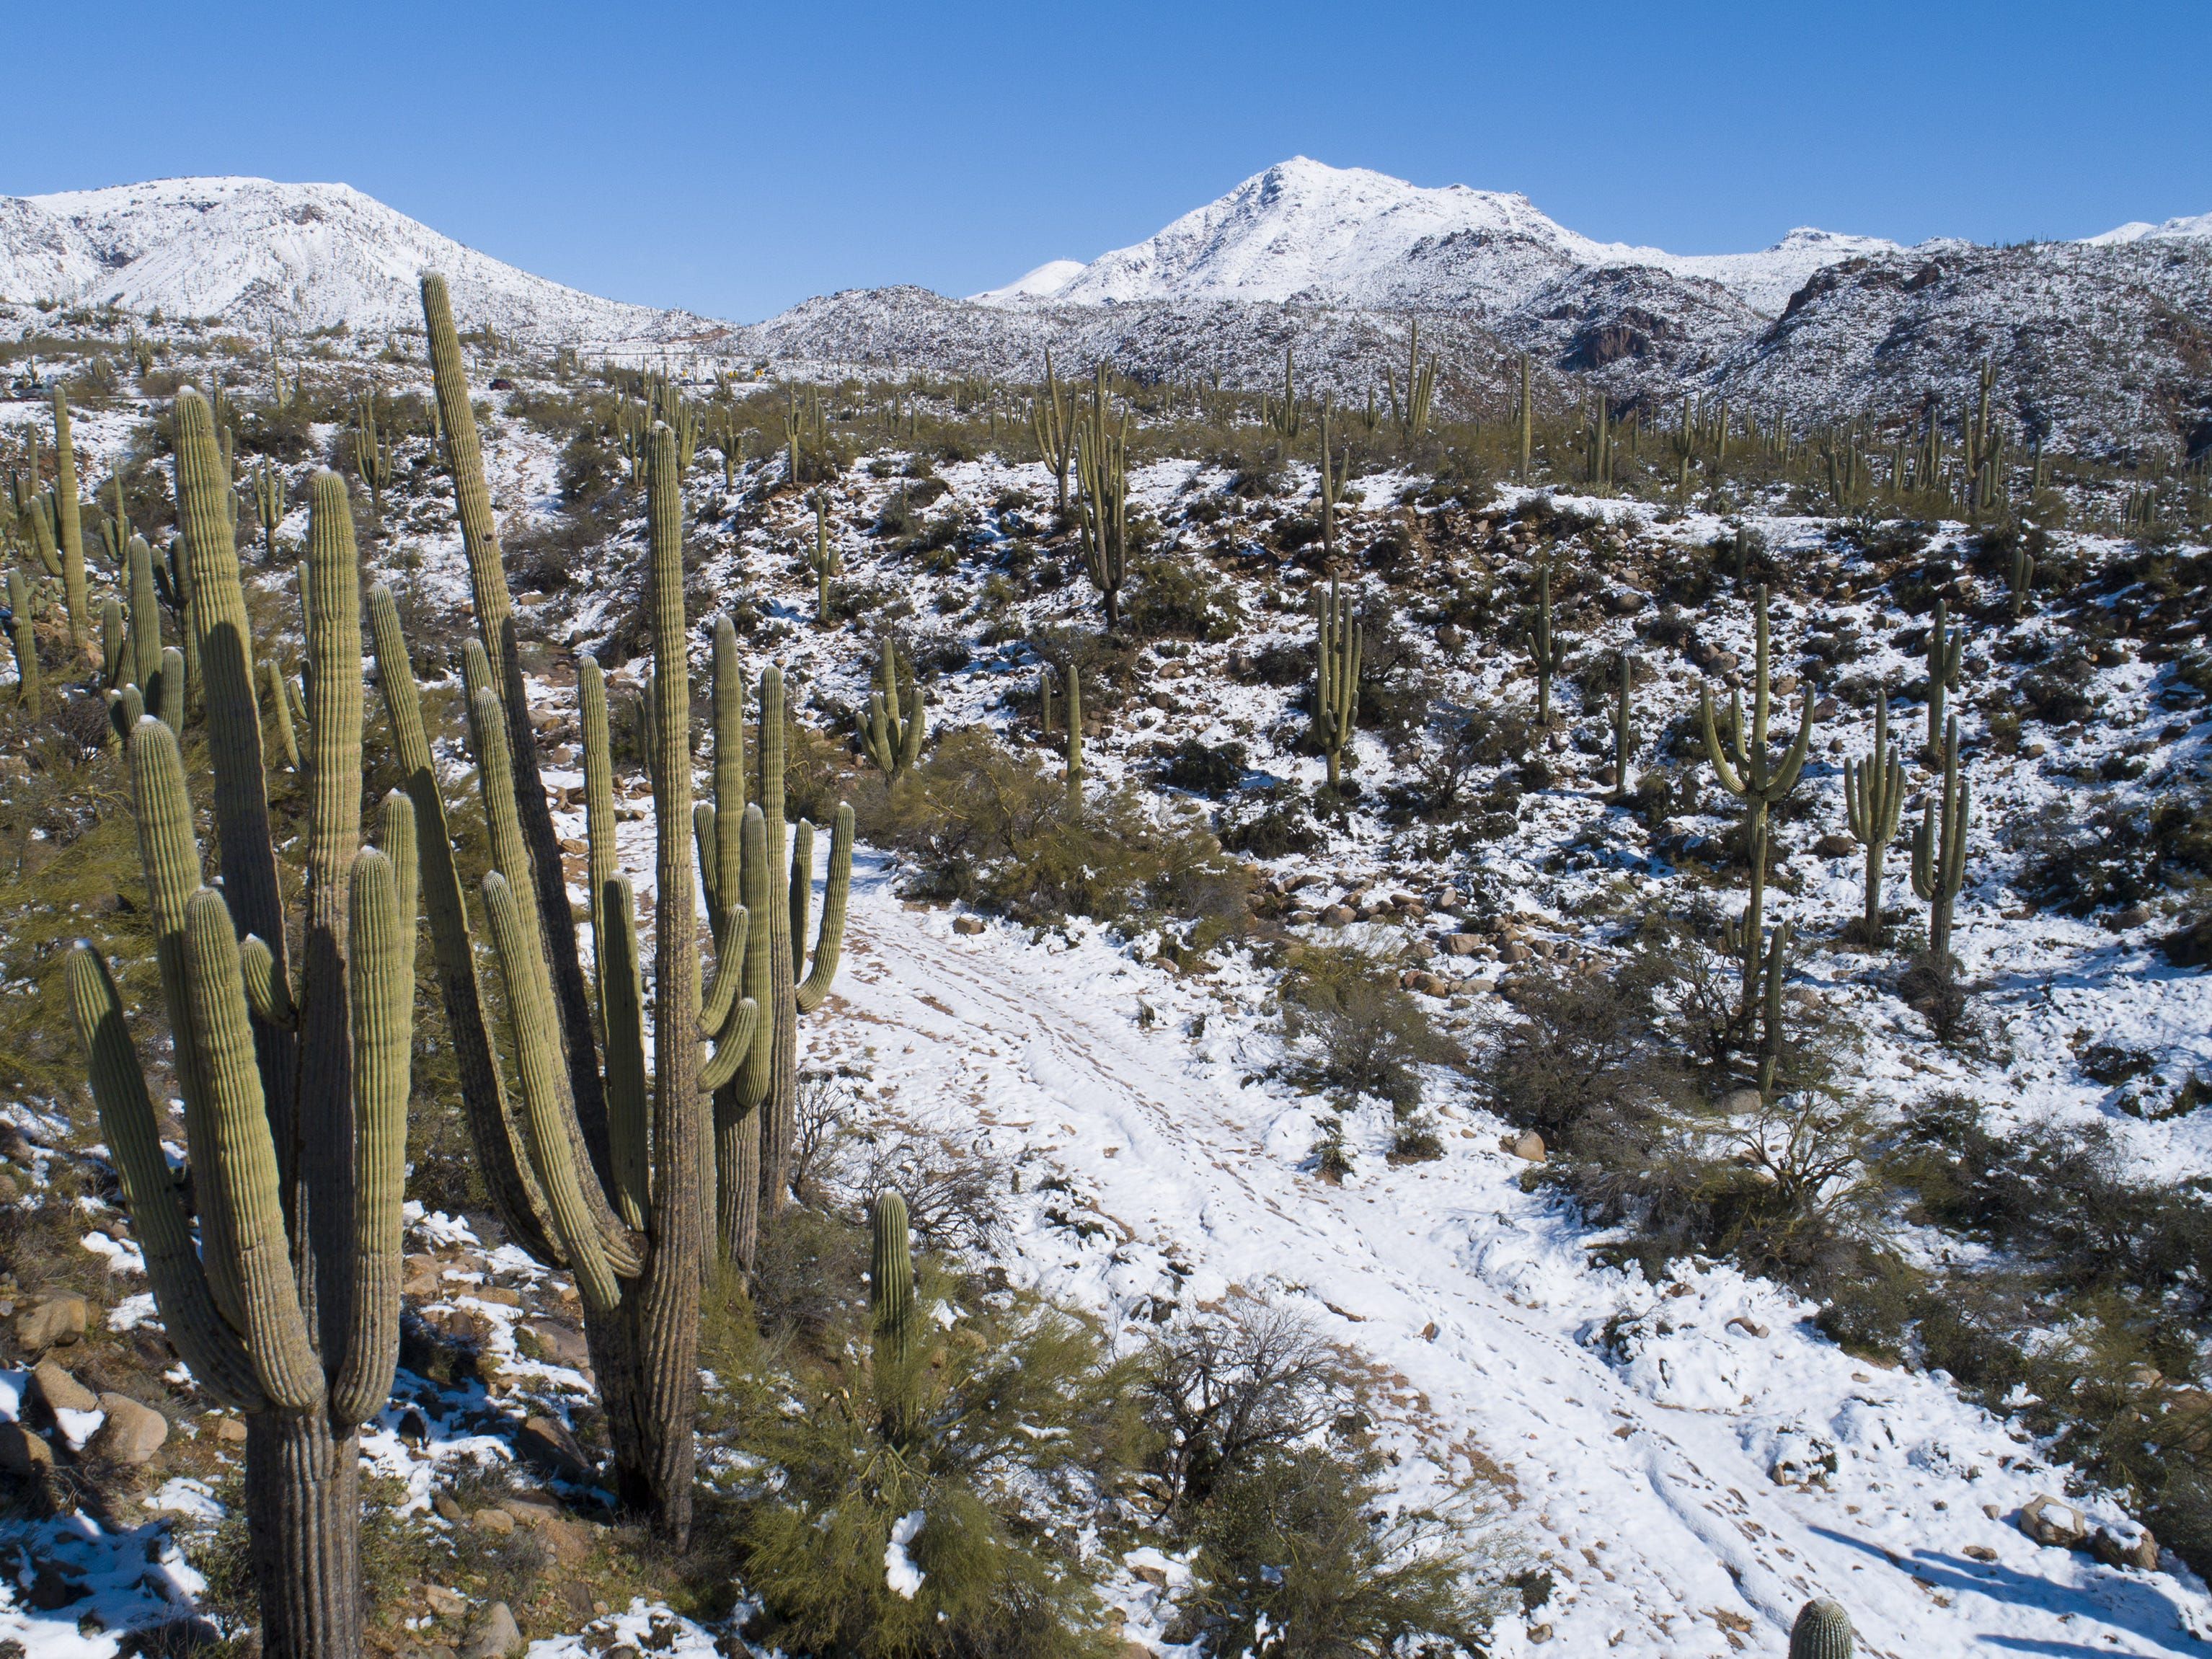 Snow covers the desert in the Tonto National Forest near Sunflower, Ariz. Feb. 23, 2019.